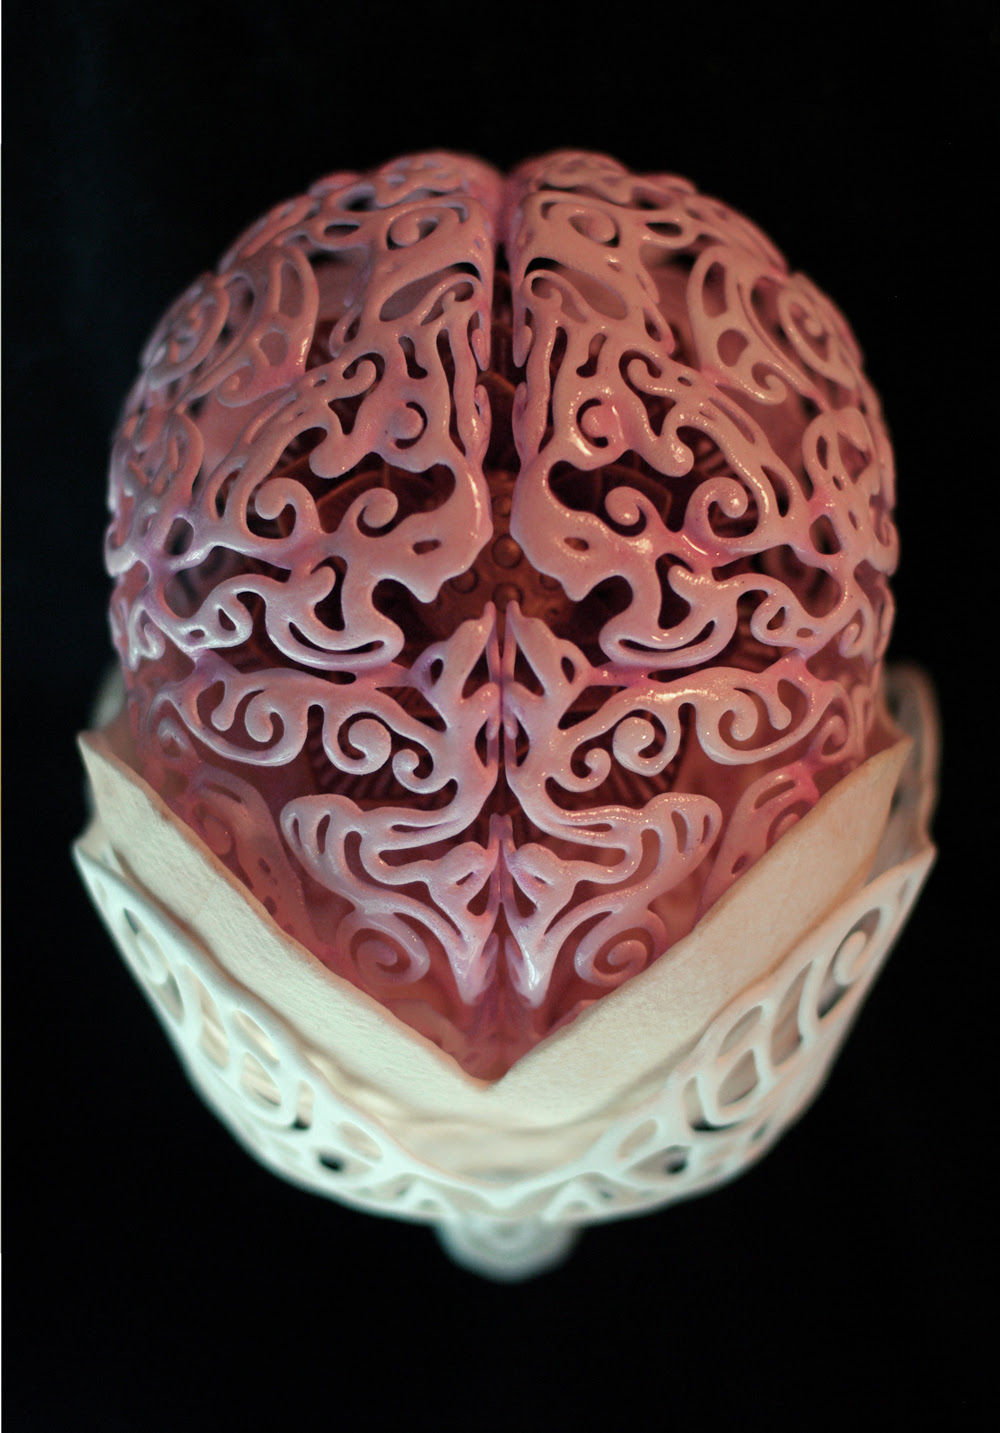 Anatomical 3D Self Portrait by Joshua Harker sculpture portraits anatomy